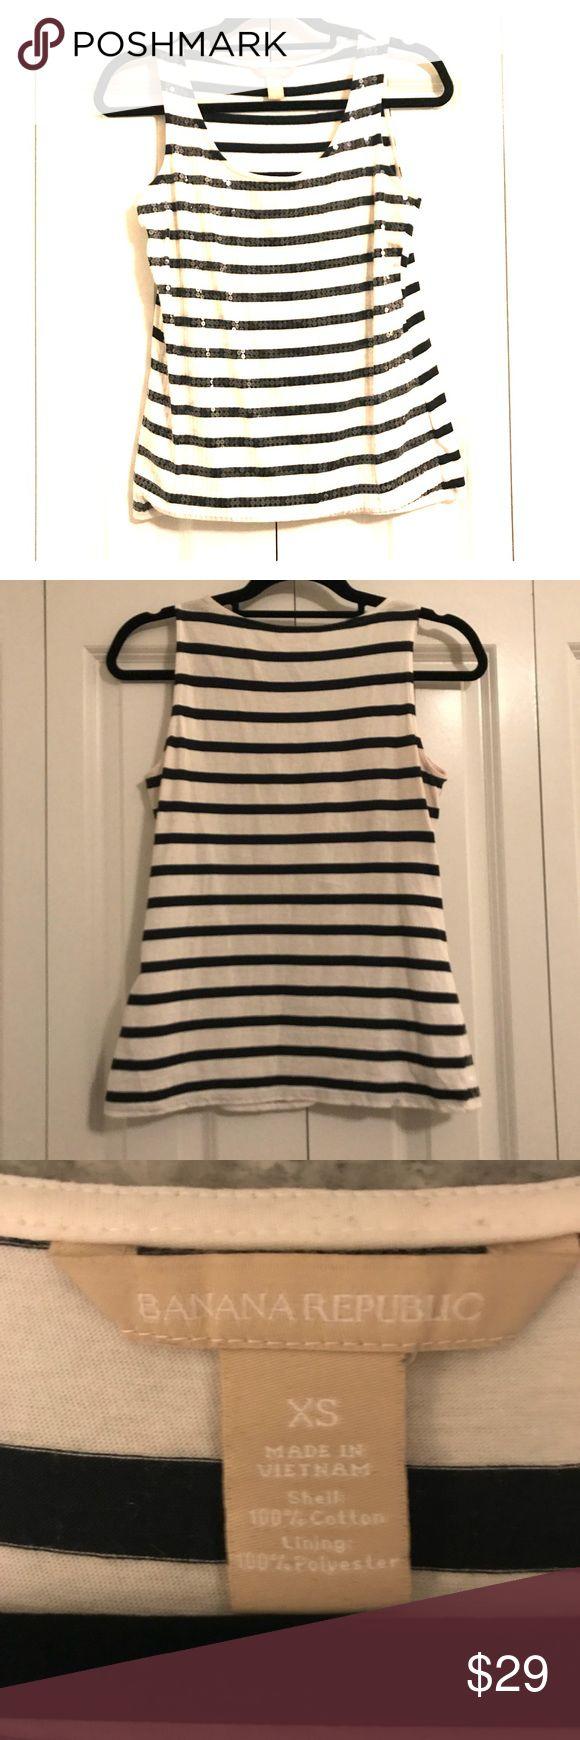 Banana Republic Navy and white tank Navy and white striped tank with sparkly details. In excellent used condition. Machine washable. Great with jeans or under a blazer to dress it up. Super comfy. Back is more of a jersey material. Hits below the waist line. Smoke free/pet free home. No defects. Banana Republic Tops Tank Tops